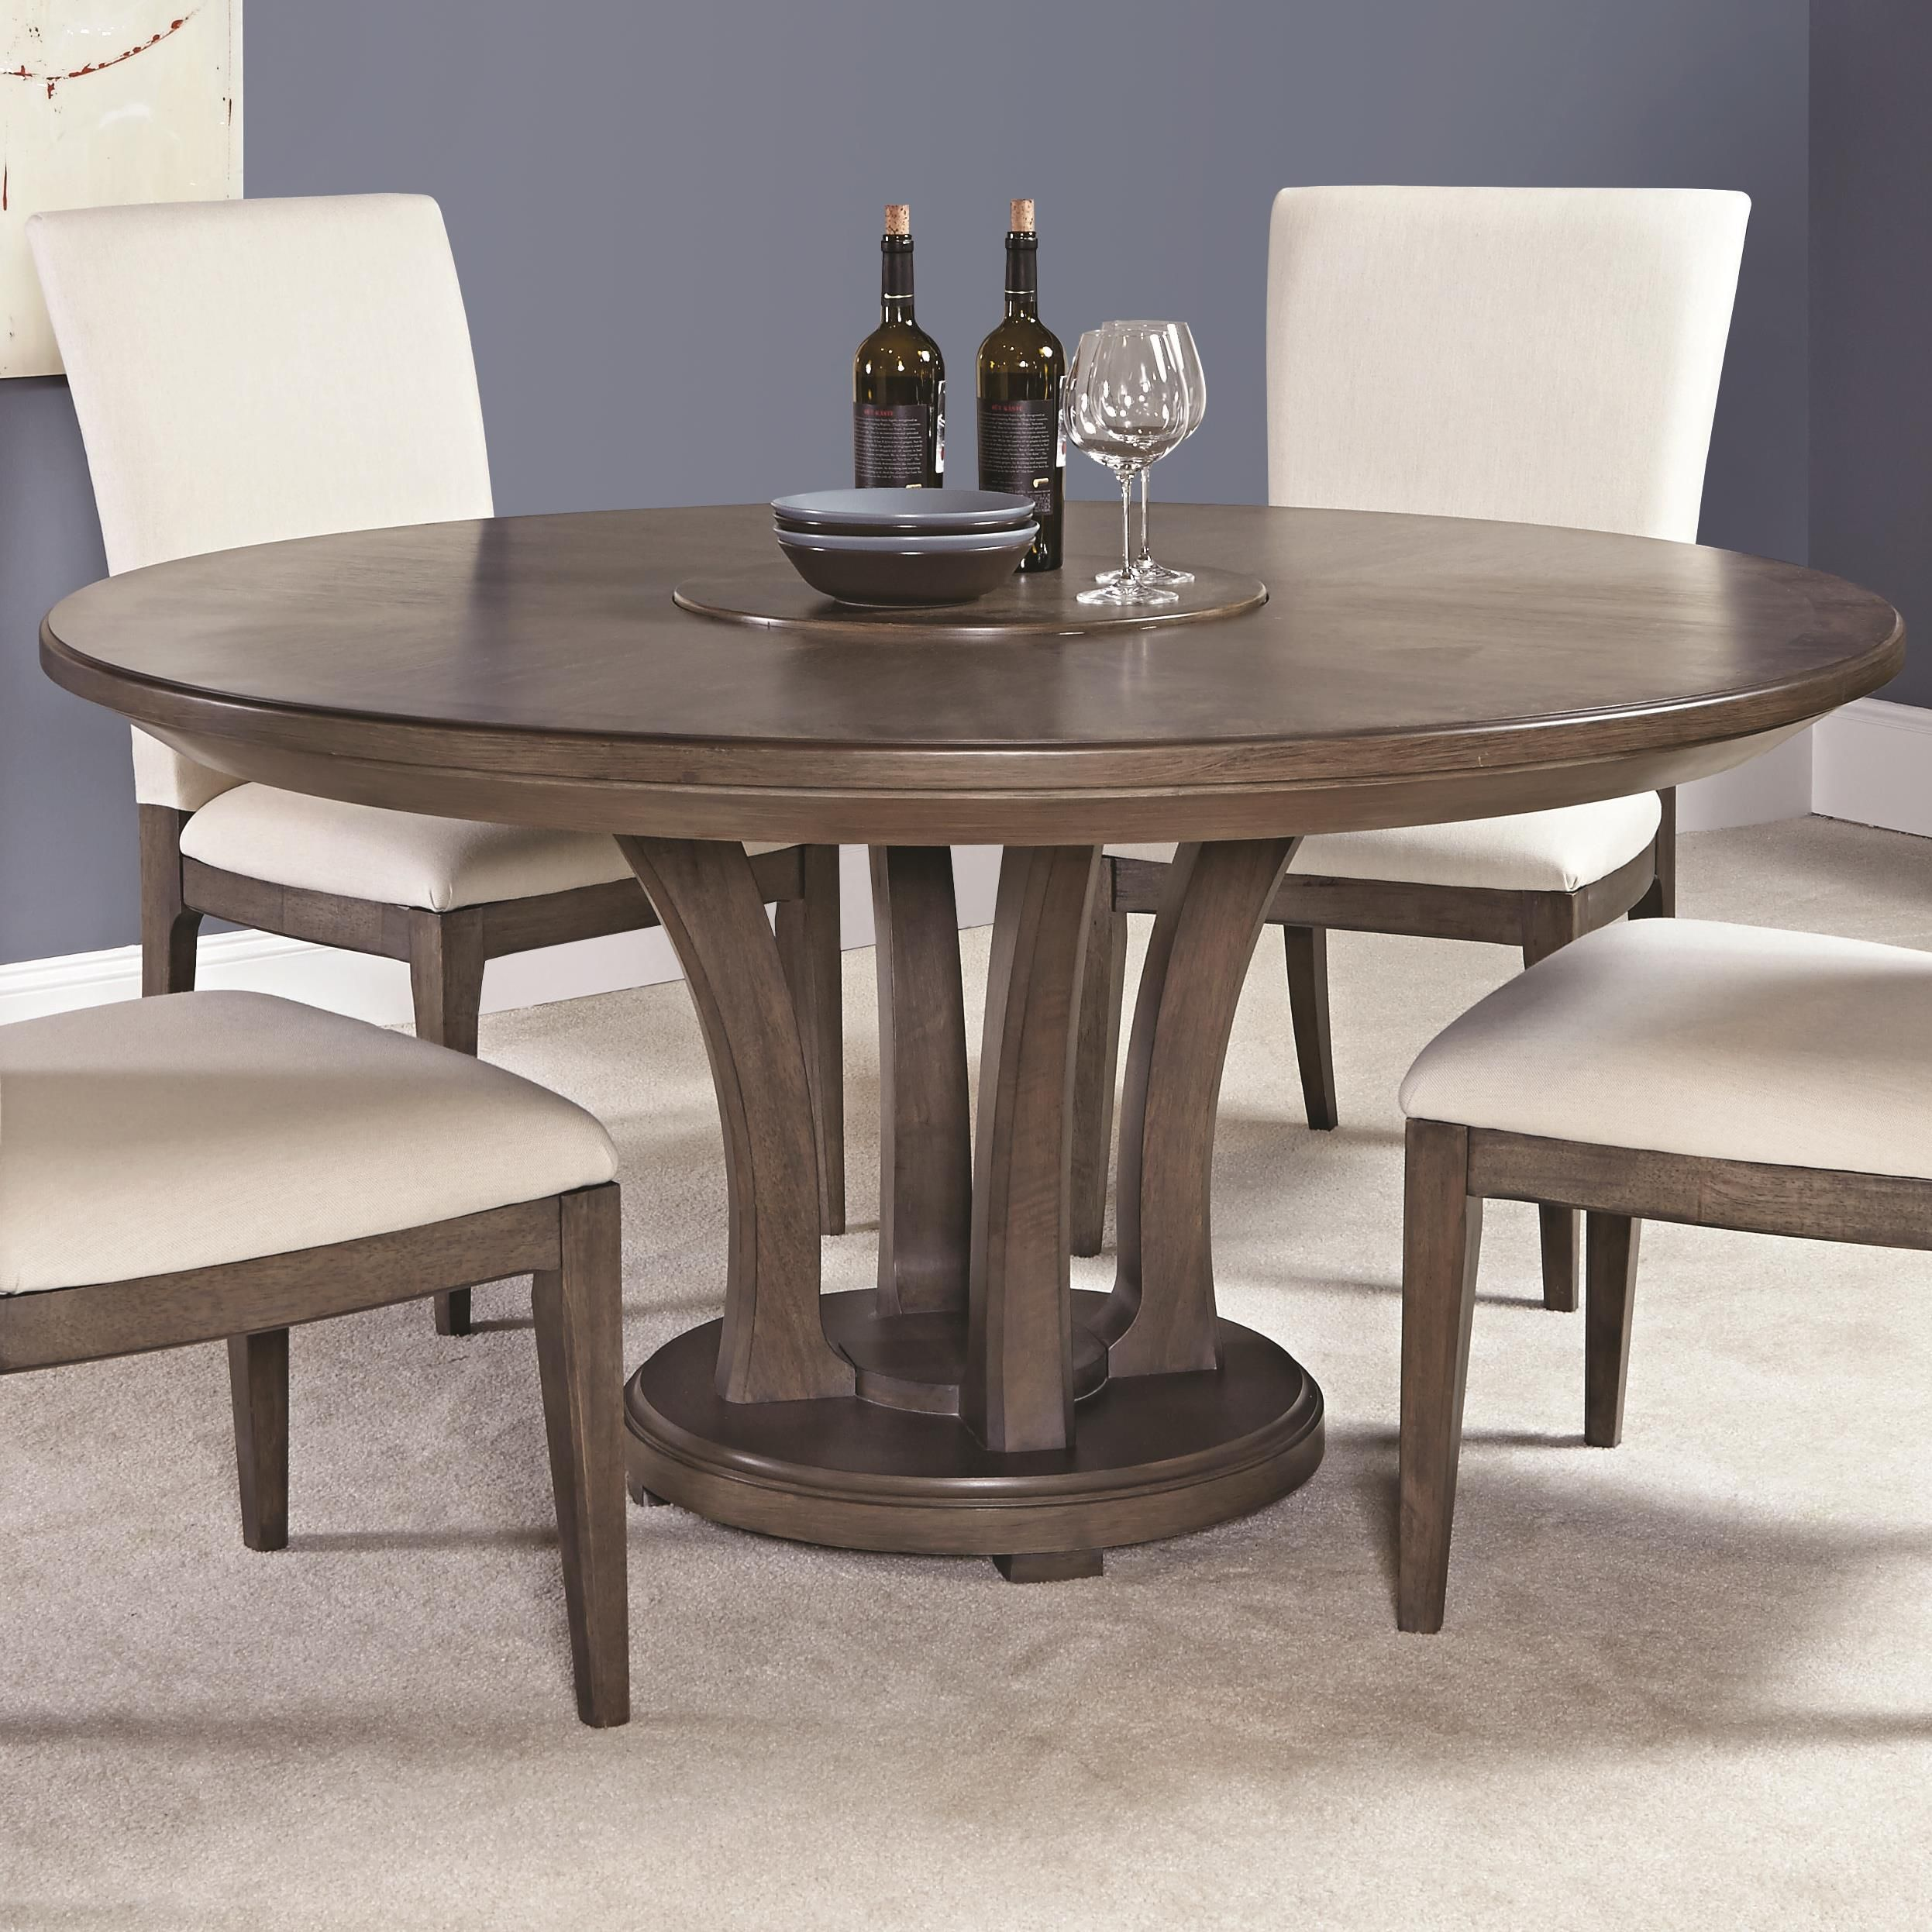 Park Studio Contemporary 62 Inch Round Dining Table With